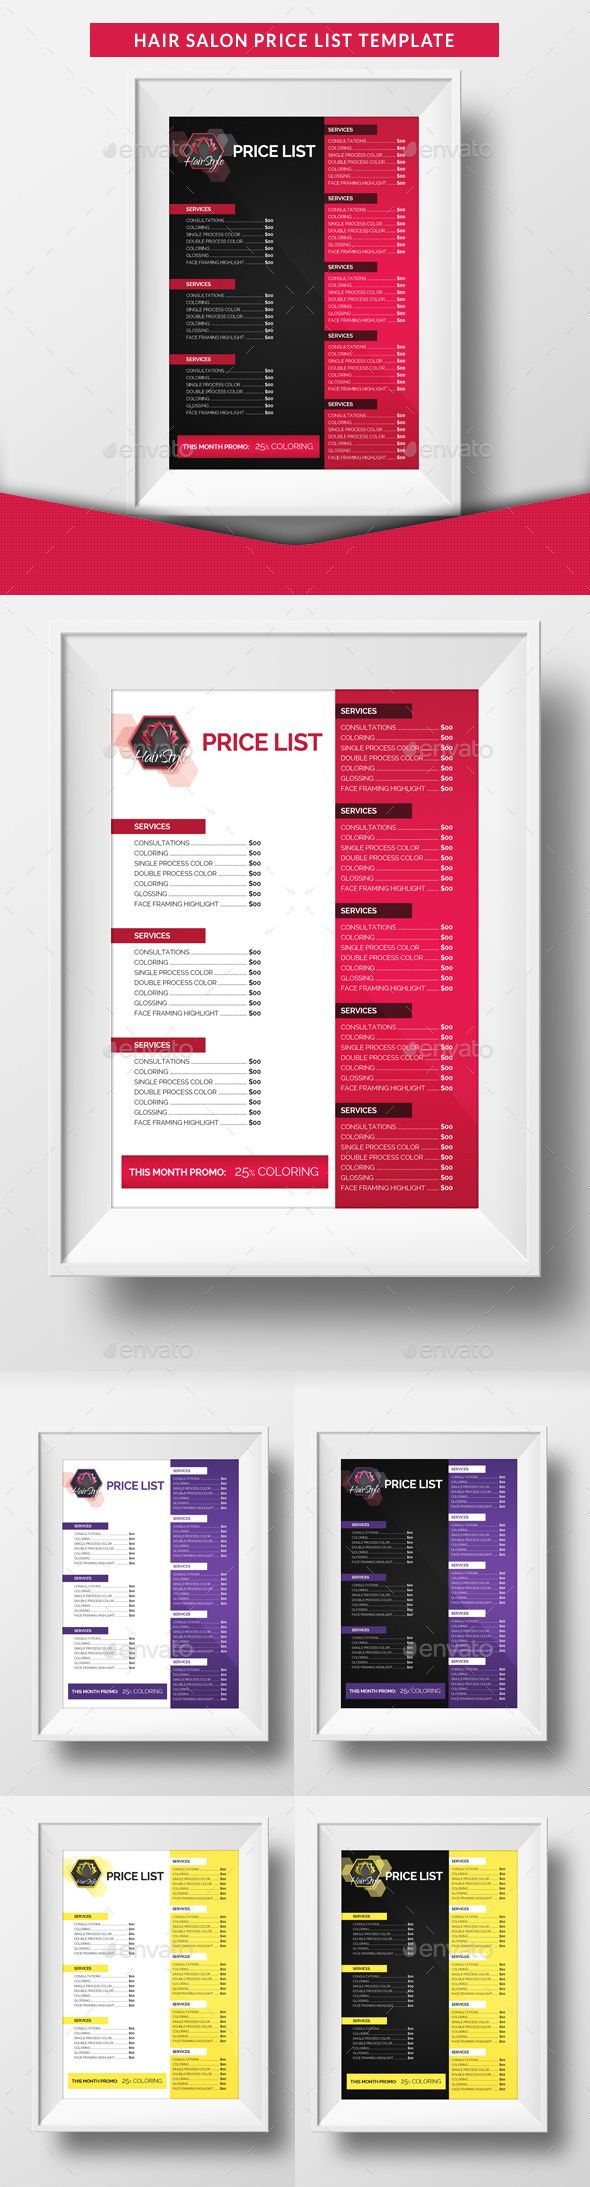 ... Price List Template U2014 Photoshop PSD #golden #business U2022 Available Here  → Https://graphicriver.net/item/hair Salon Price List Template /15553215?refu003dpxcr